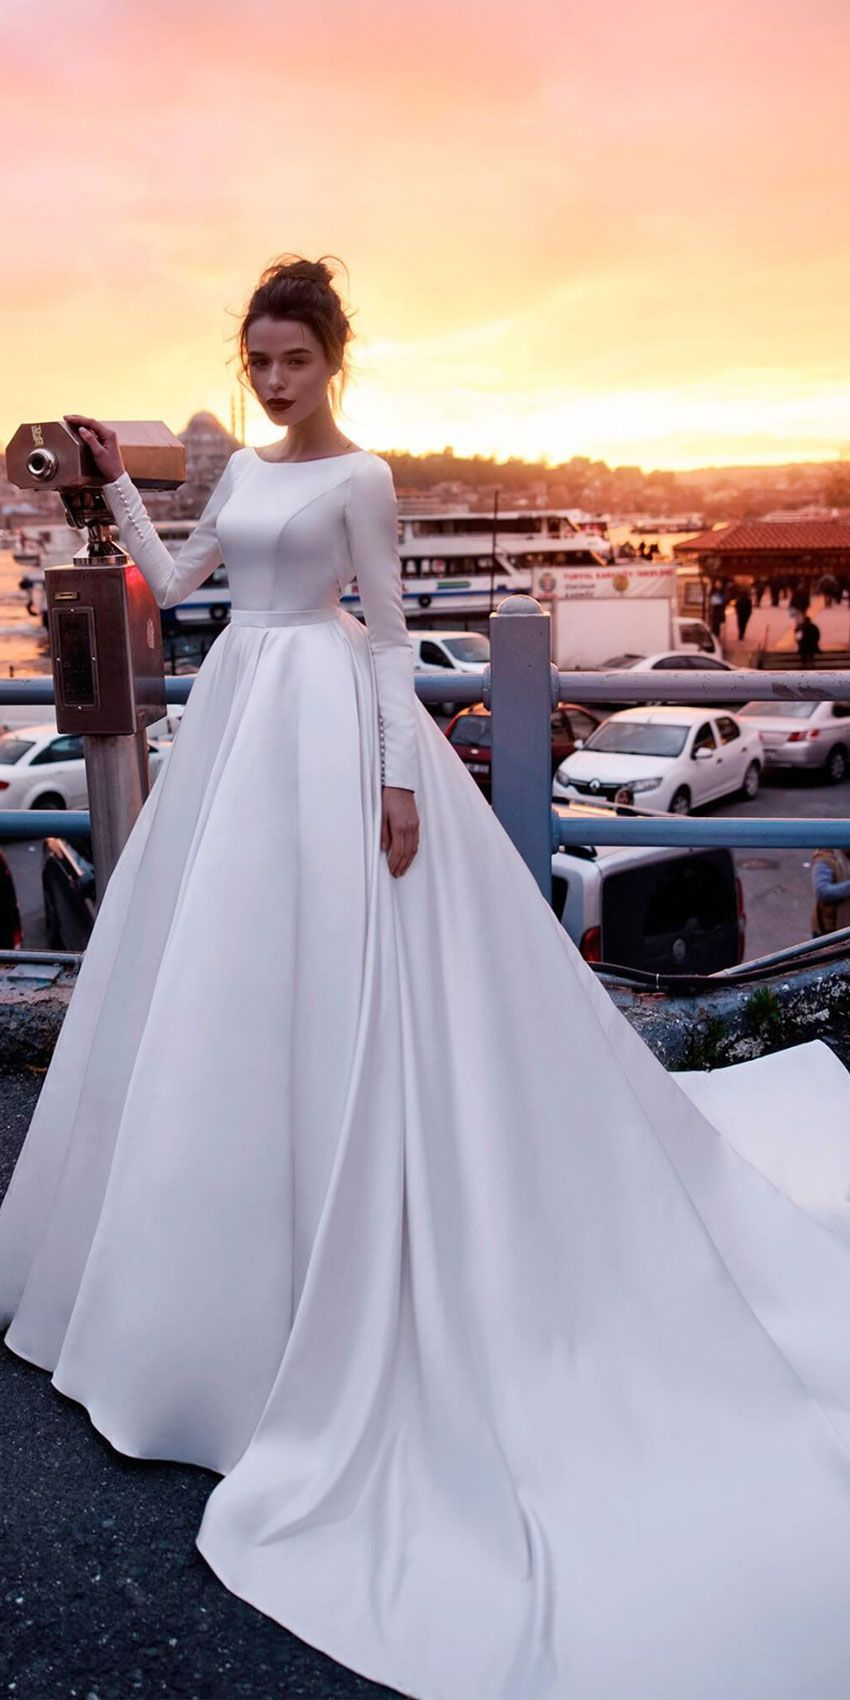 Blammobiamo wedding dress inspiration ball gowns wedding dress